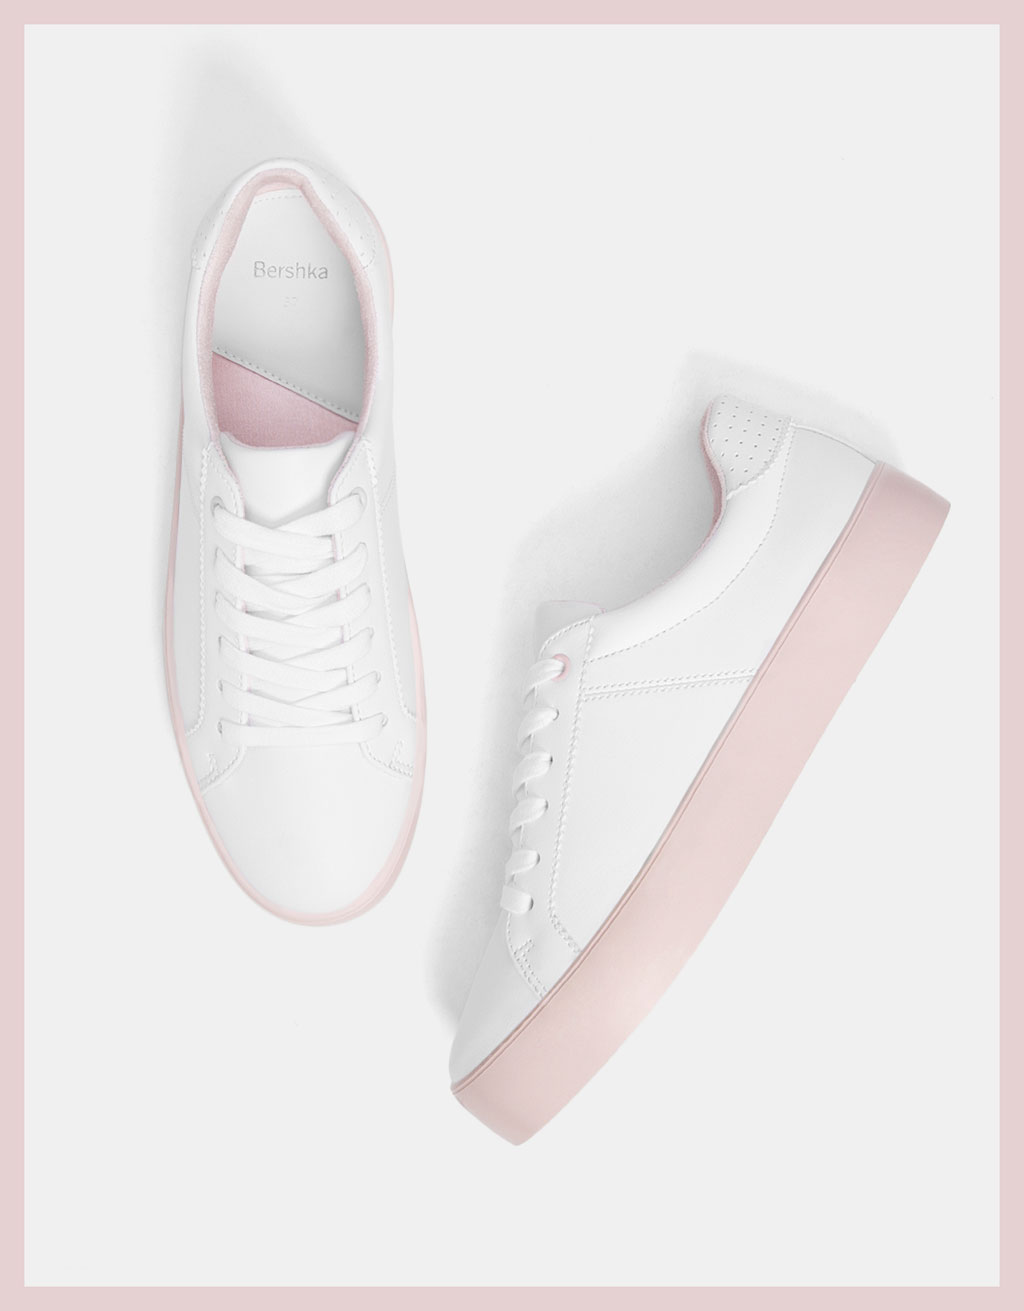 Platform sneakers with pink soles